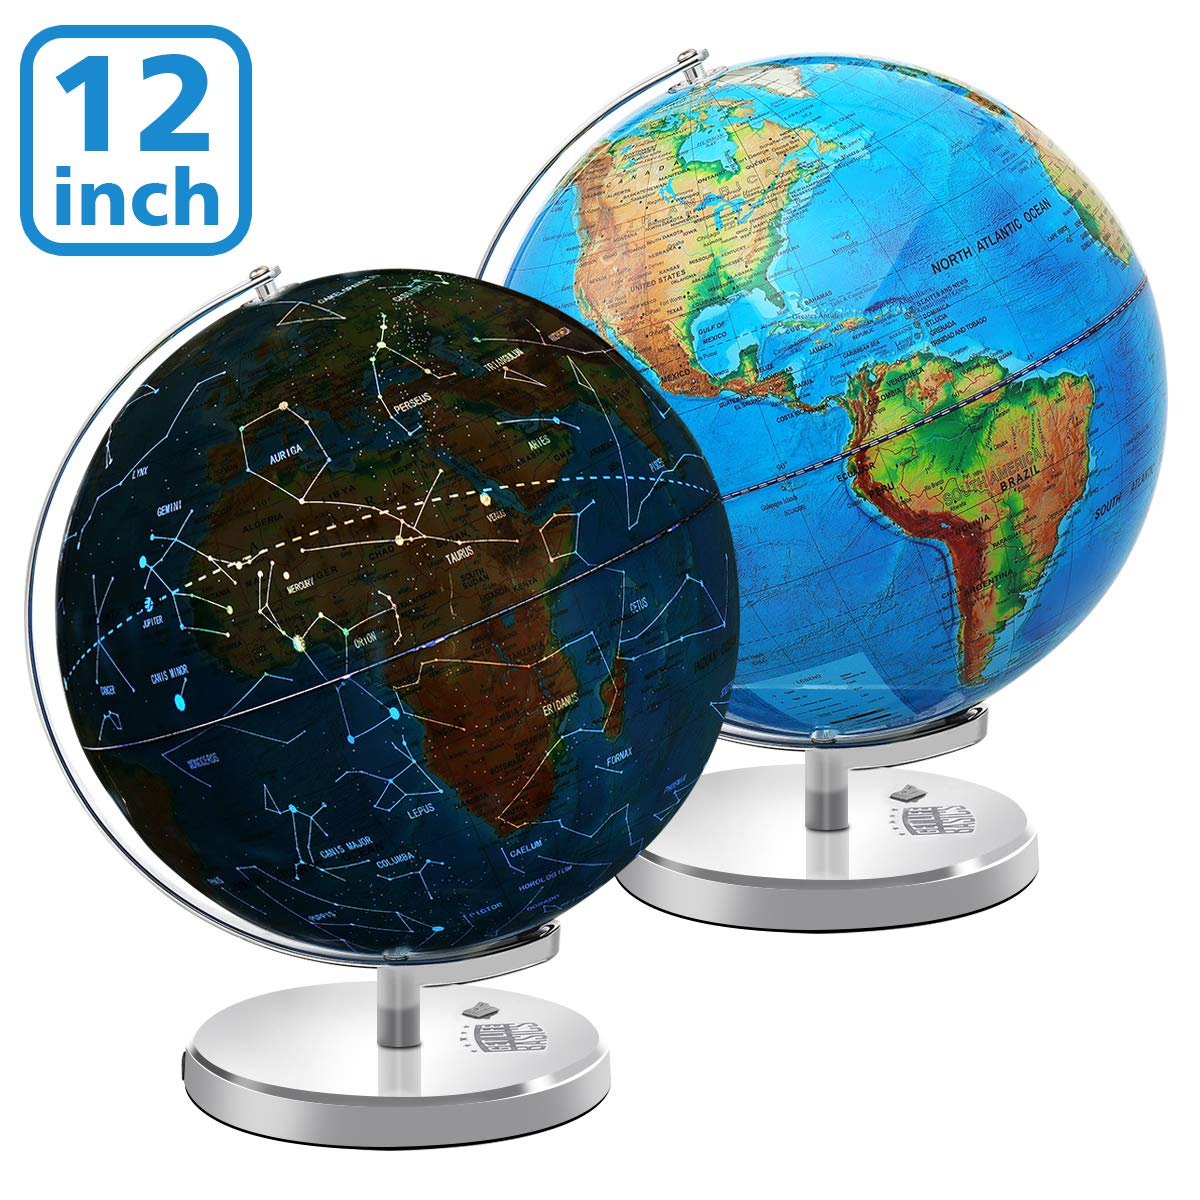 Illuminated Spinning World Globe for Kids, KingSo 12'' Diameter 3 in 1 World Globe dispiay Nightlight, Earth Globe with Heavy Duty Stand for for Kids|LED Night Light Lamp, Political Map and Constellati by KingSo